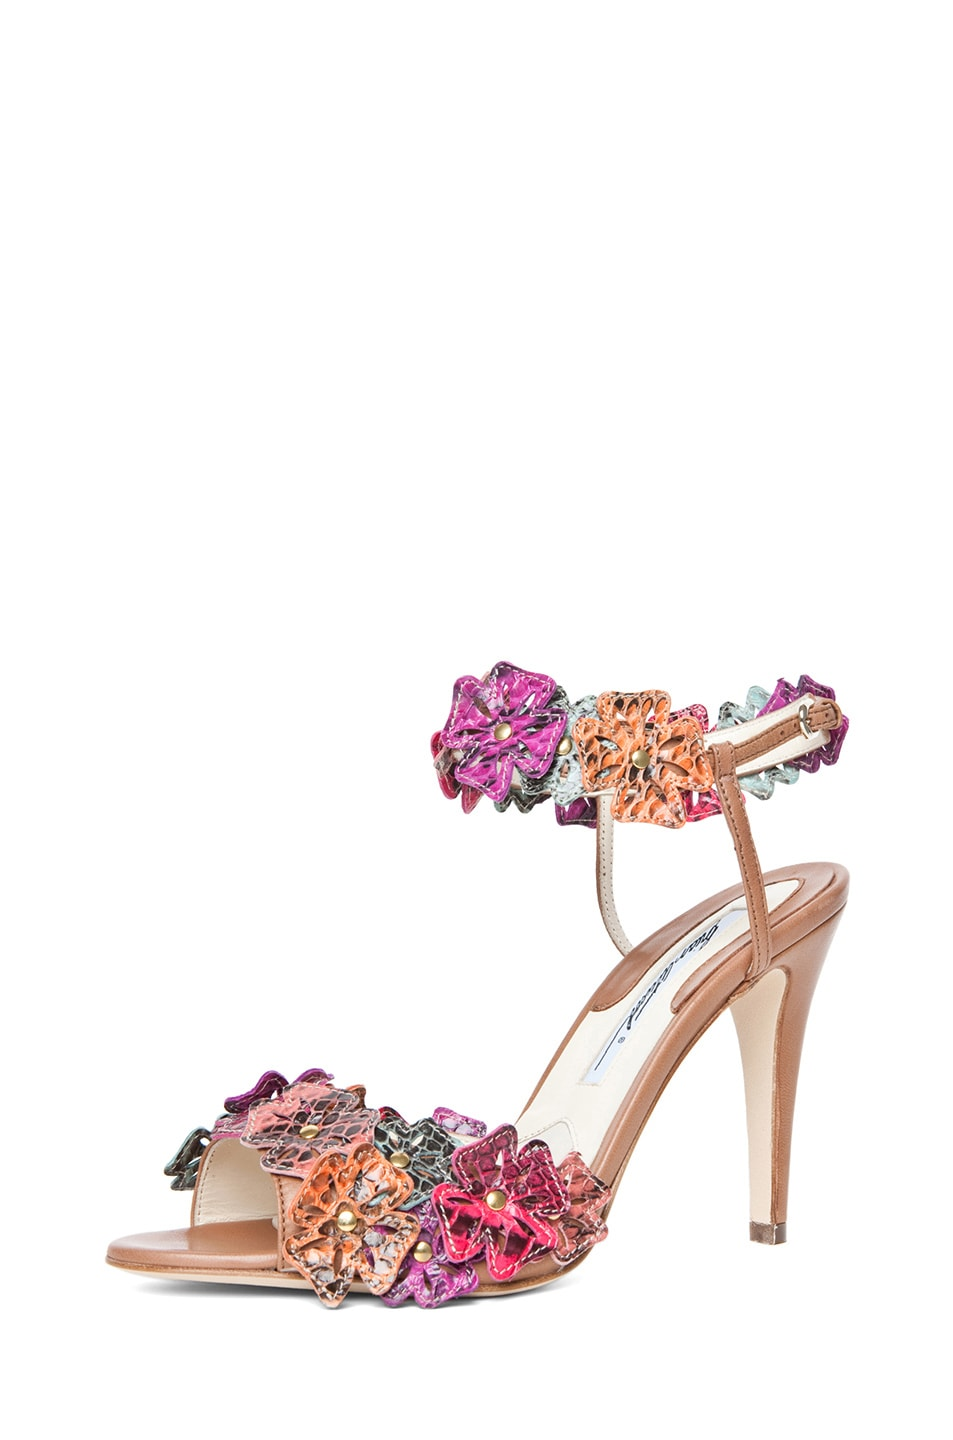 Image 2 of Brian Atwood Coraline Leather Flower Sandals in Snake Multi